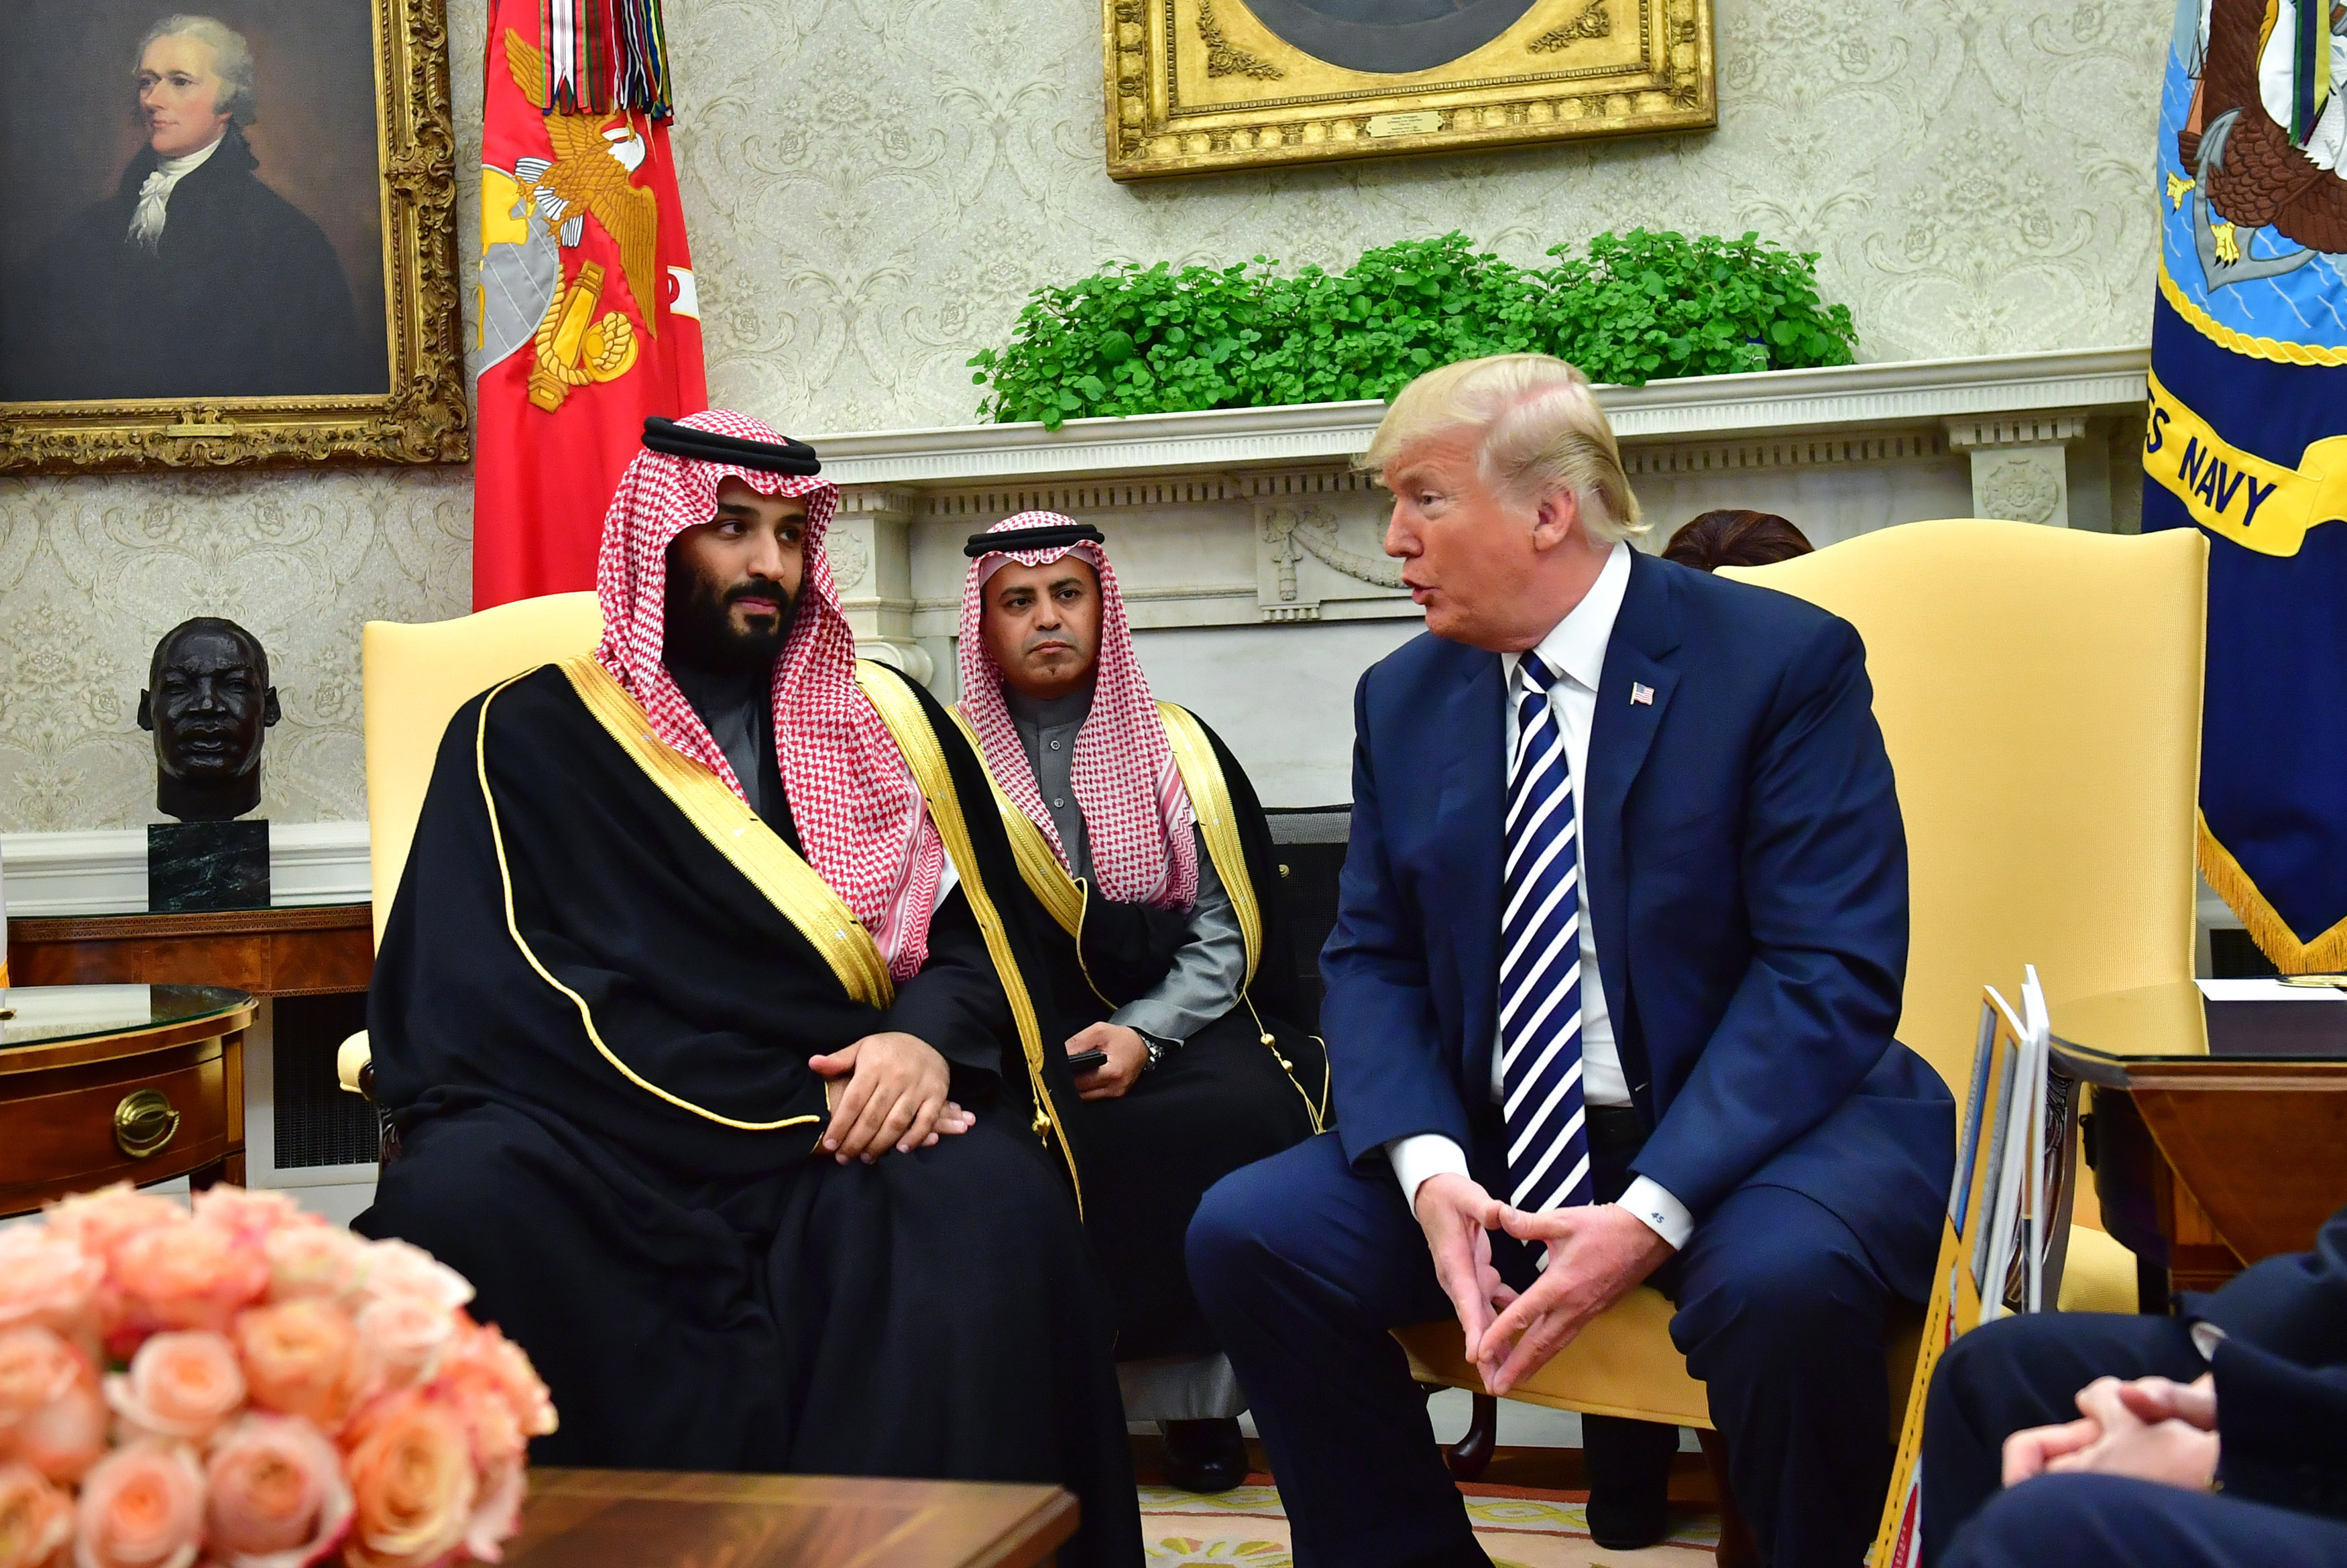 U.S. President Donald Trump, right, speaks while Mohammed bin Salman, Saudi Arabia's crown prince, left, listens during a meeting in the Oval Office of the White House. on March 20